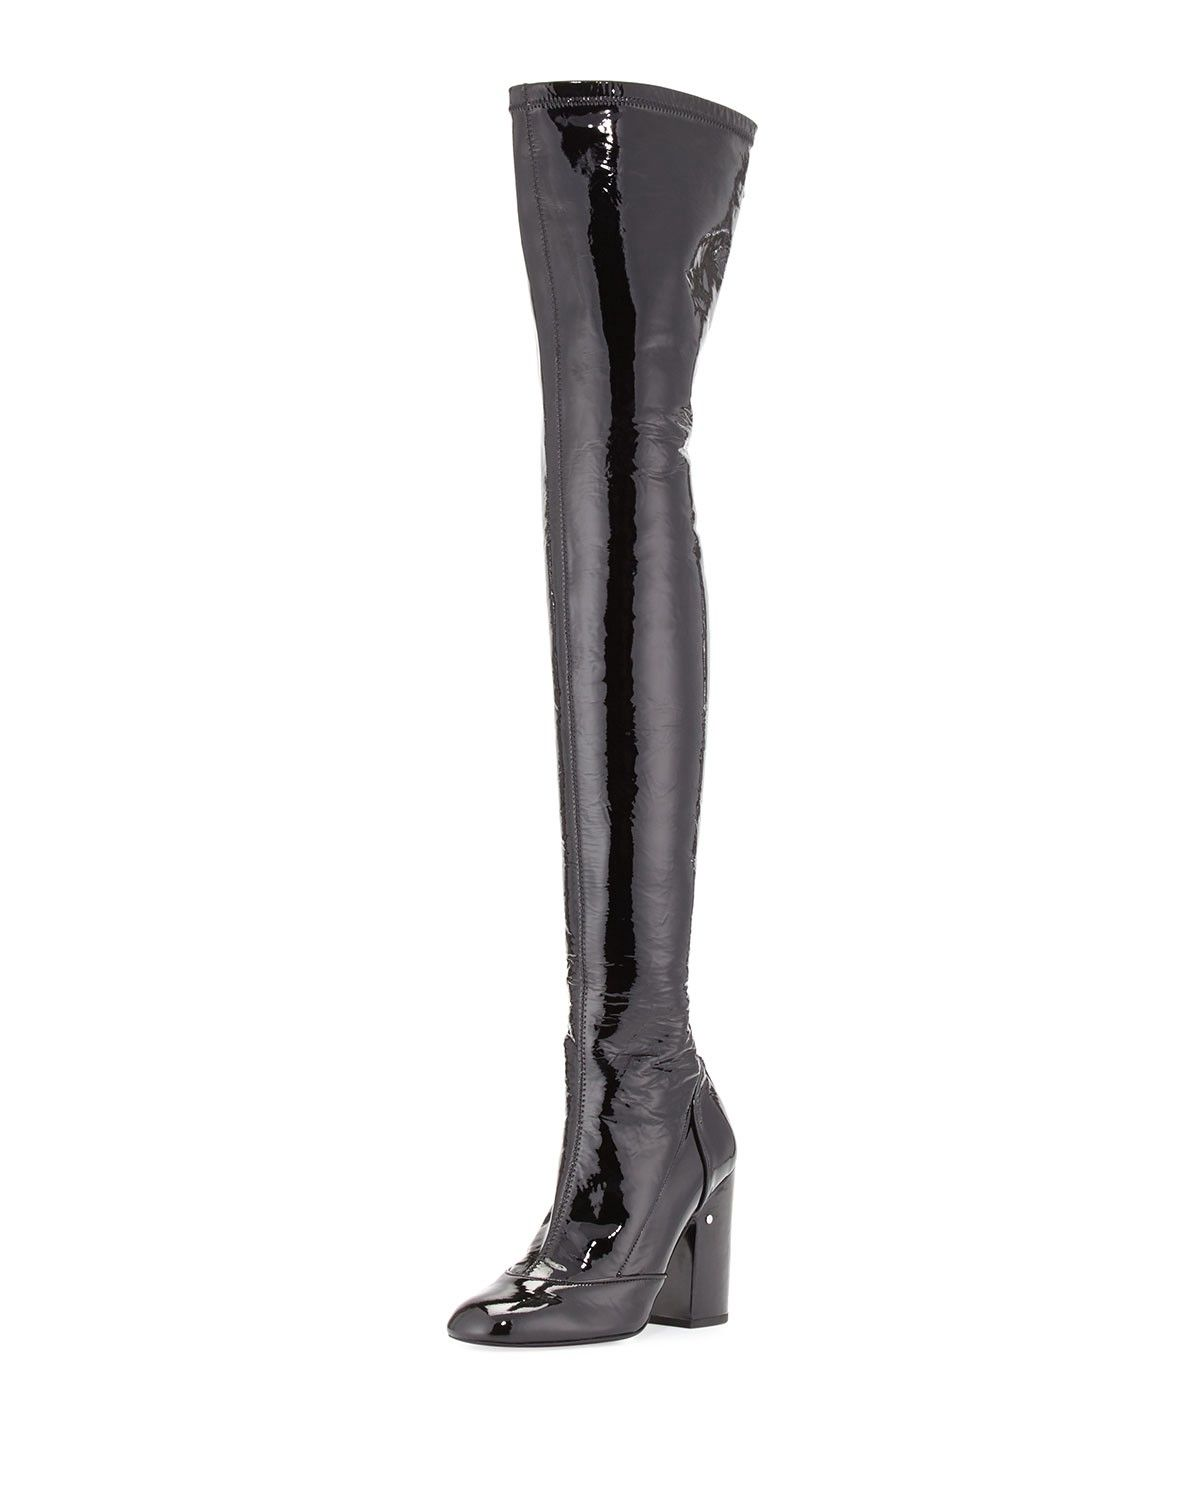 06d4a1ae3aa LAURENCE DACADE Madison Patent Over-The-Knee Boot.  laurencedacade  shoes   all